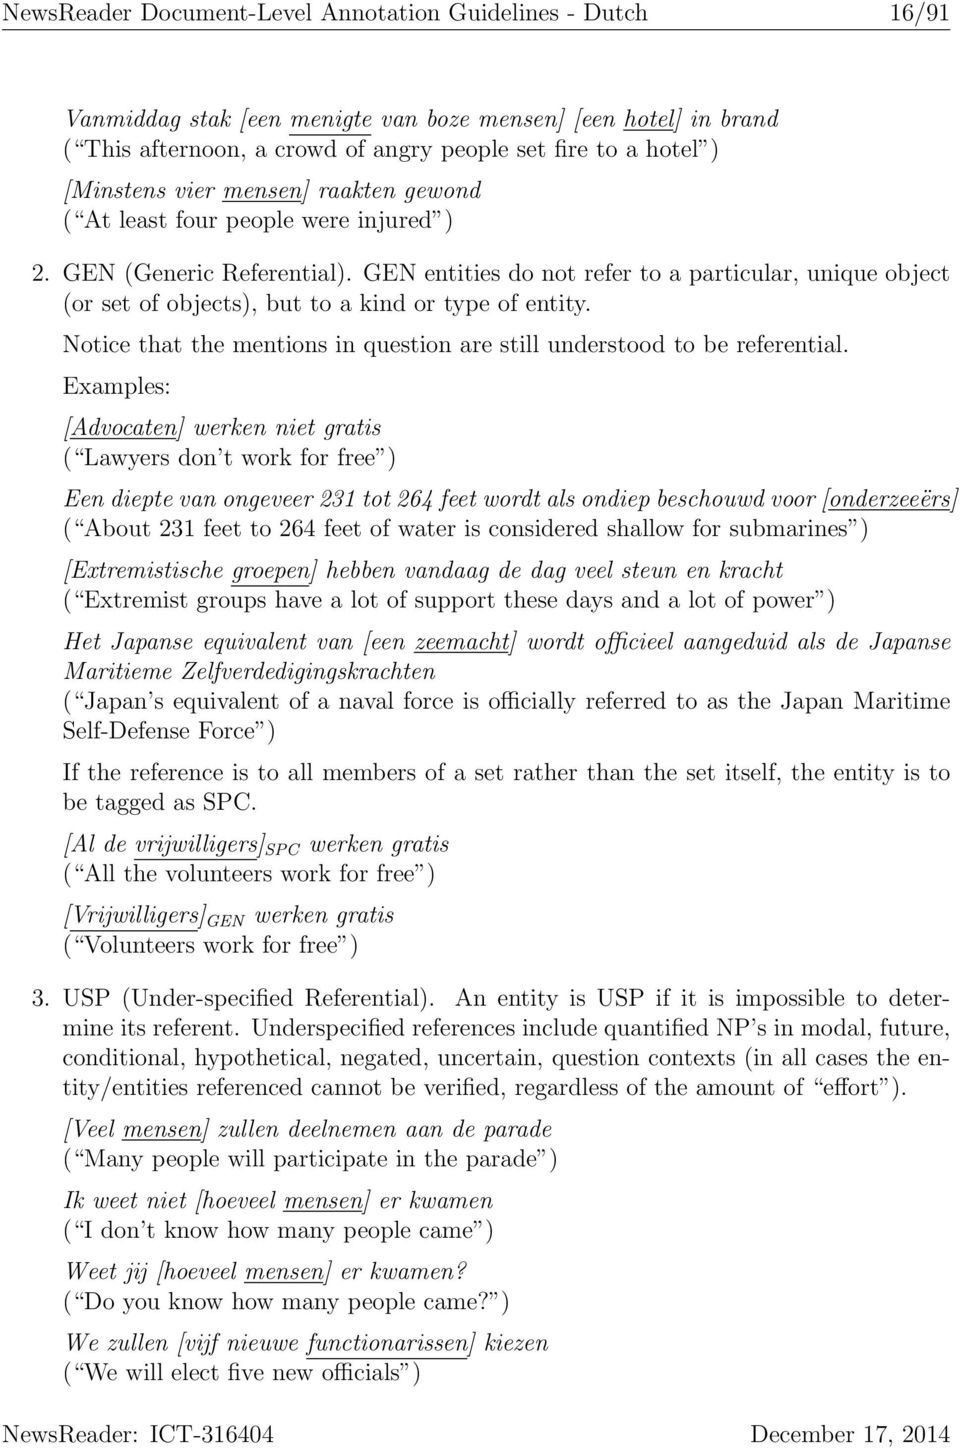 GEN entities do not refer to a particular, unique object (or set of objects), but to a kind or type of entity. Notice that the mentions in question are still understood to be referential.